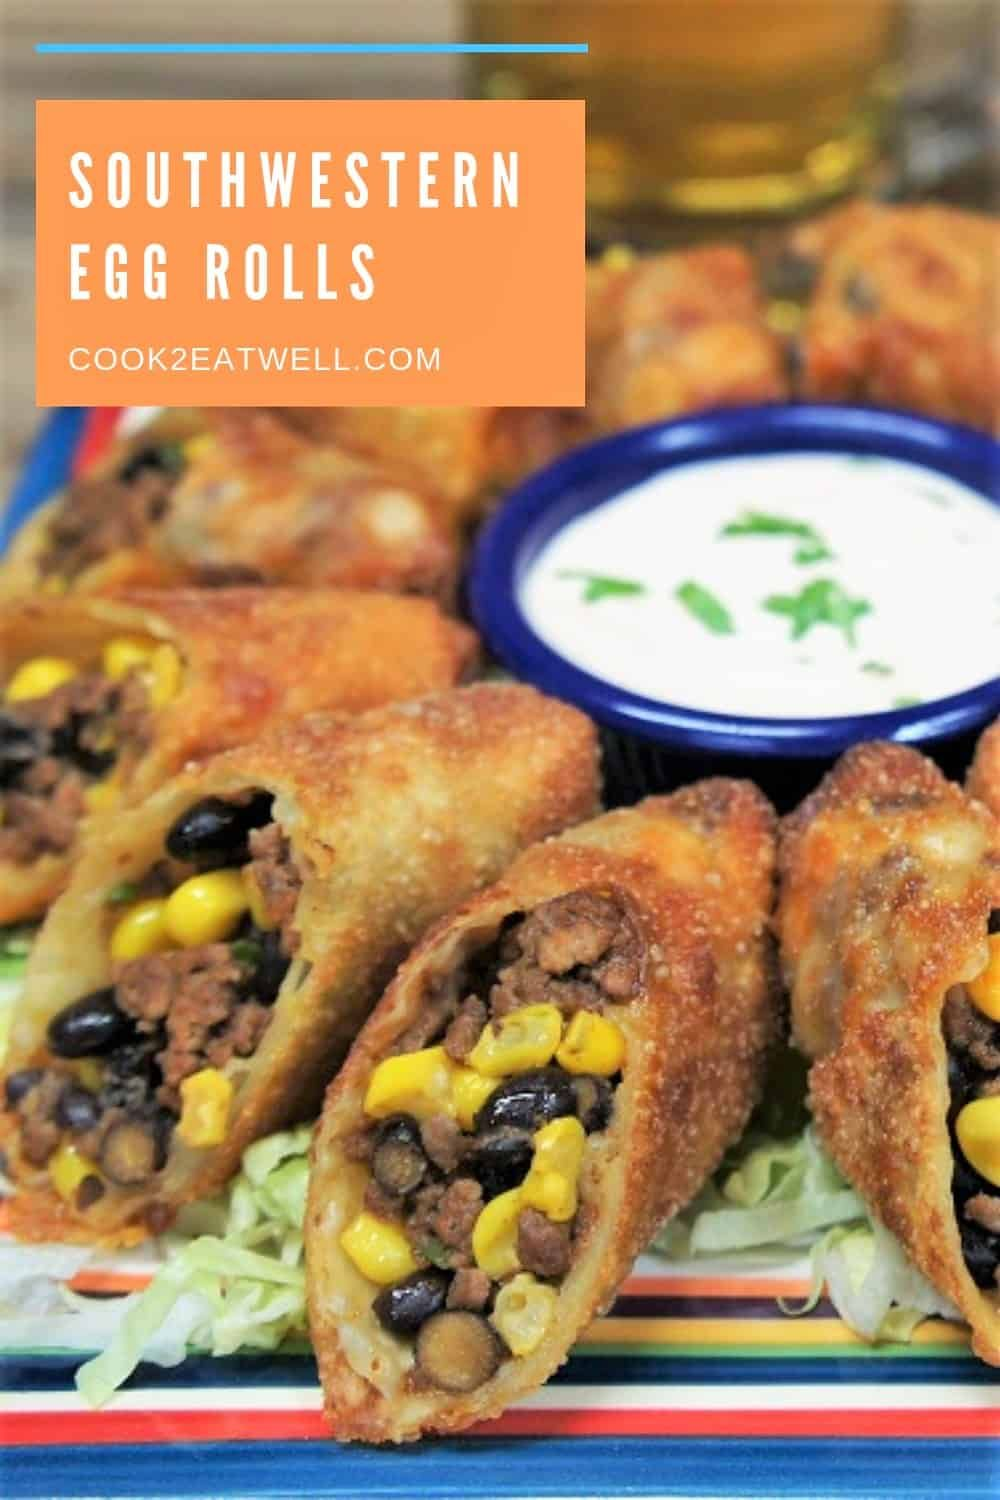 Filled With Seasoned Ground Beef Black Beans And Corn These Southwestern Egg Rolls Are Flavorful And Re Southwestern Egg Rolls Egg Rolls Mexican Food Recipes